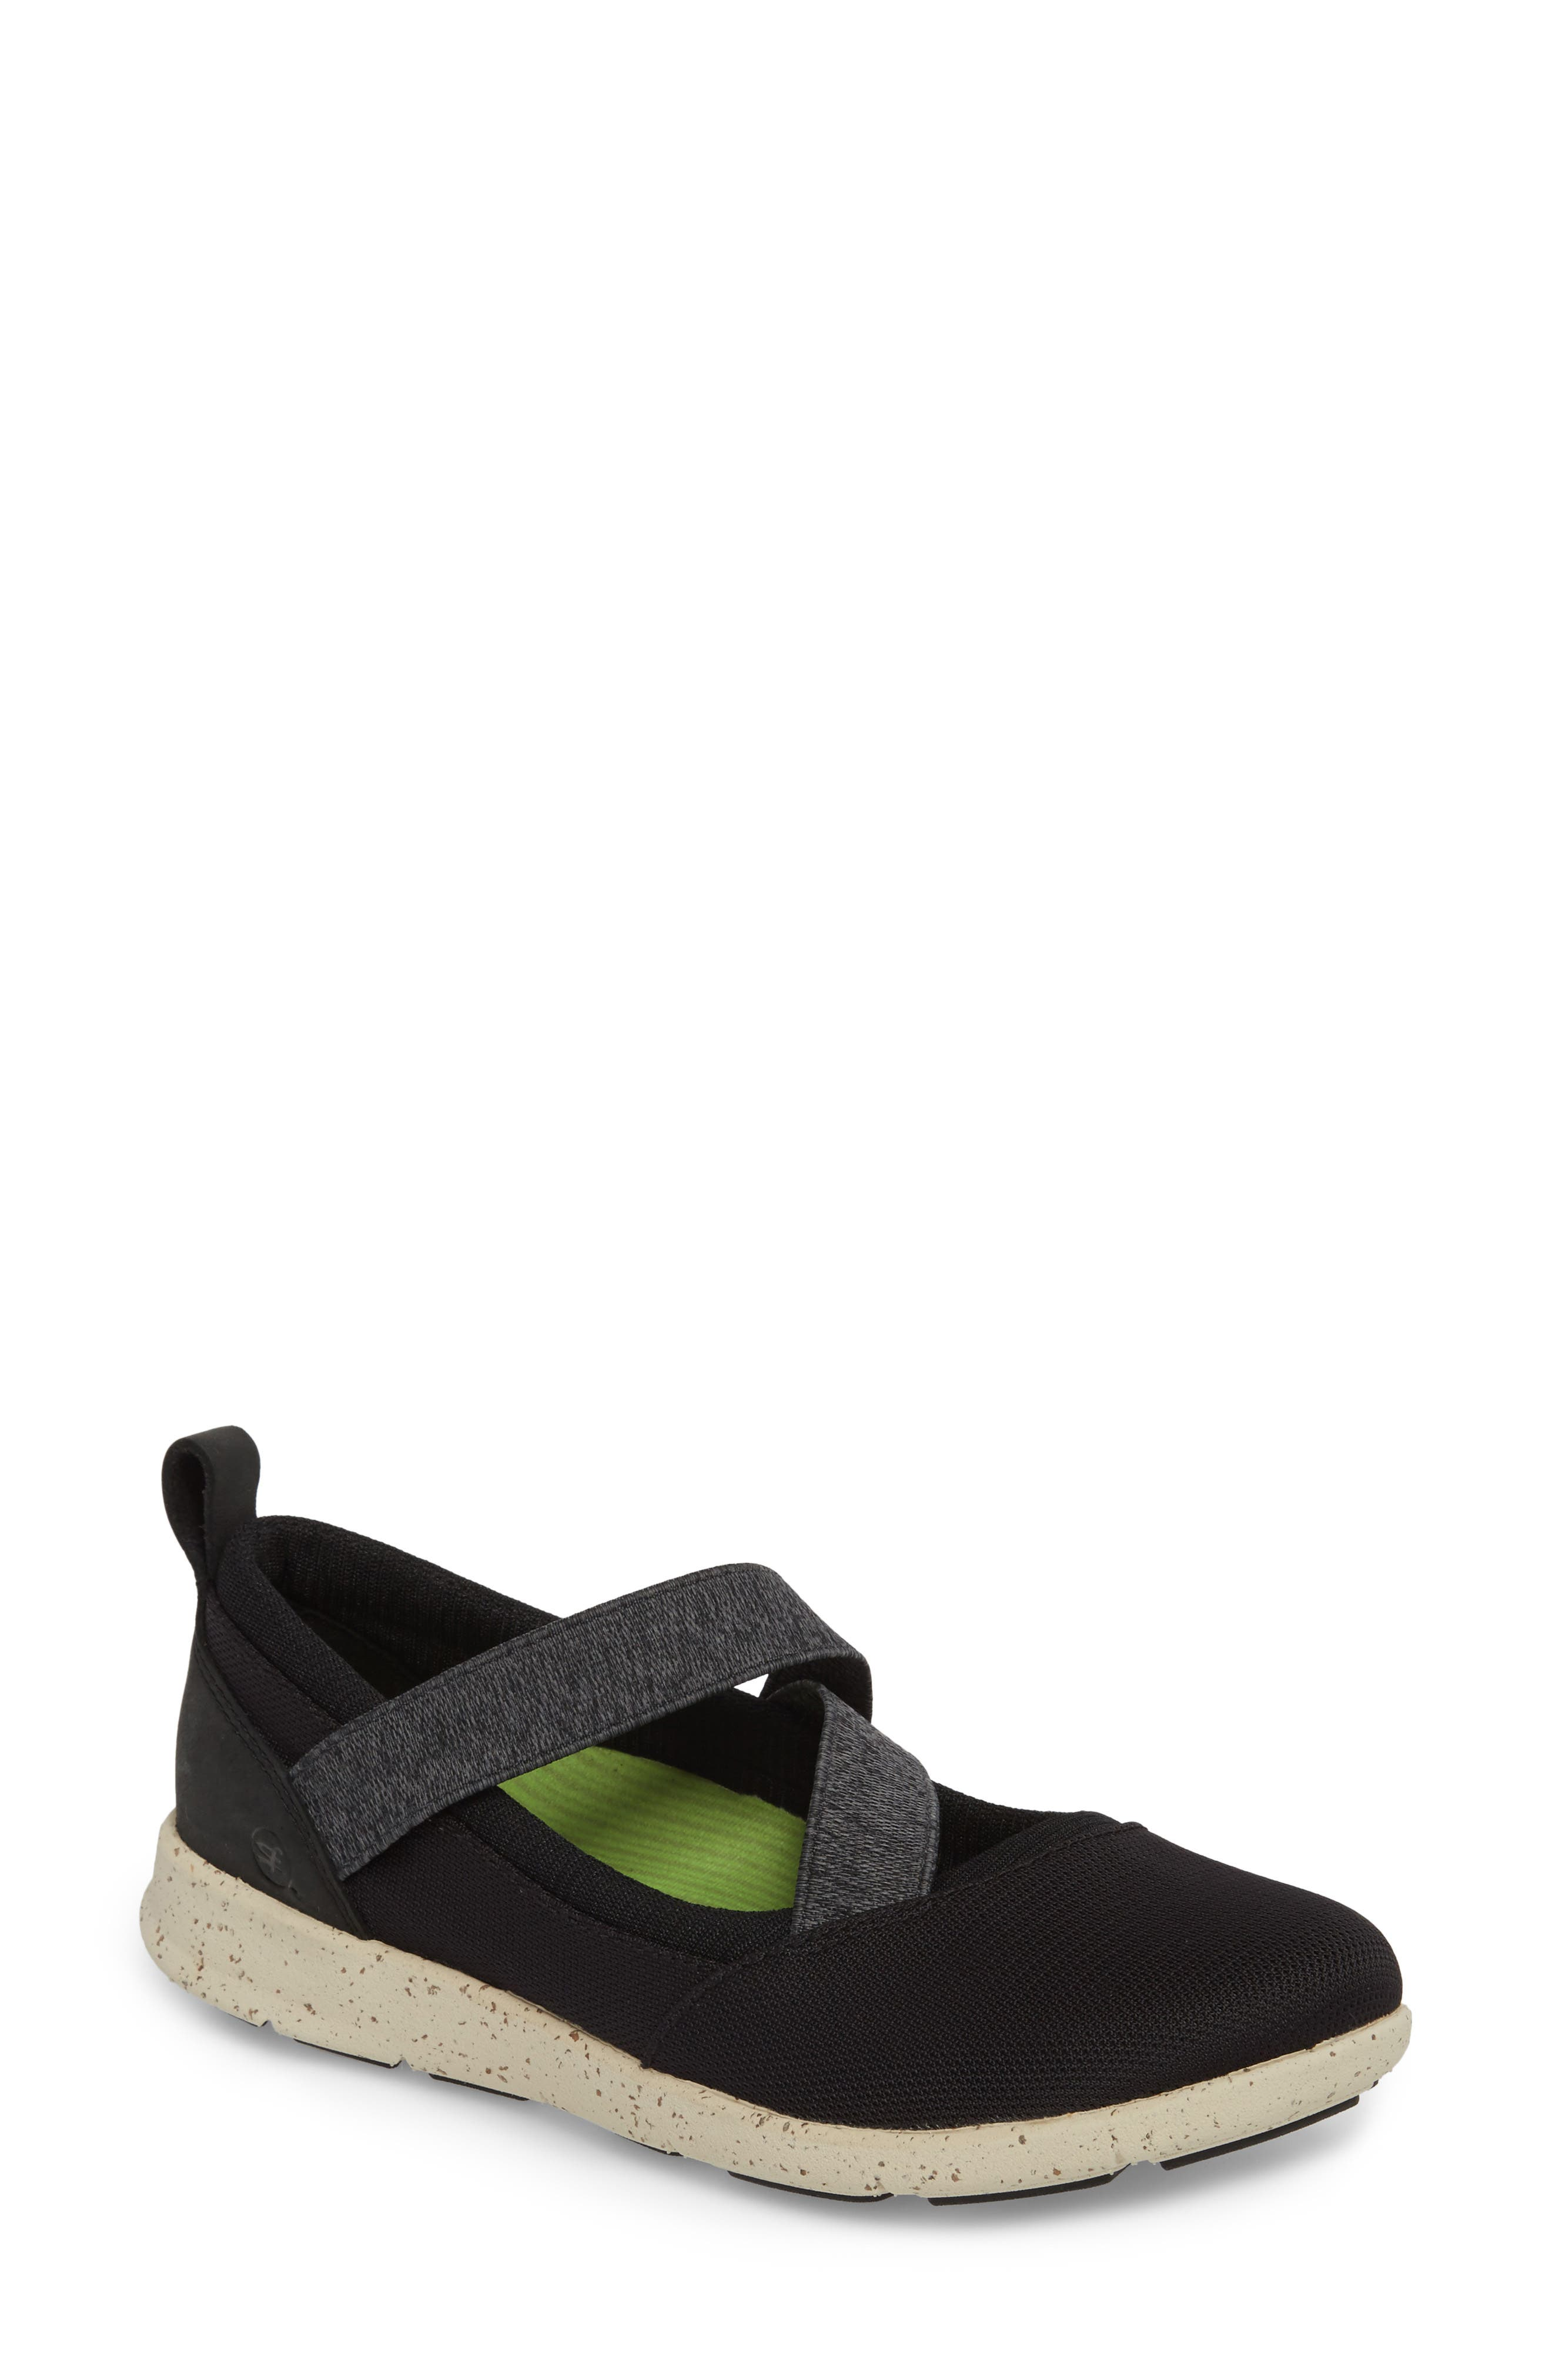 SUPERFEET Palisade Sneaker, Main, color, BLACK LEATHER